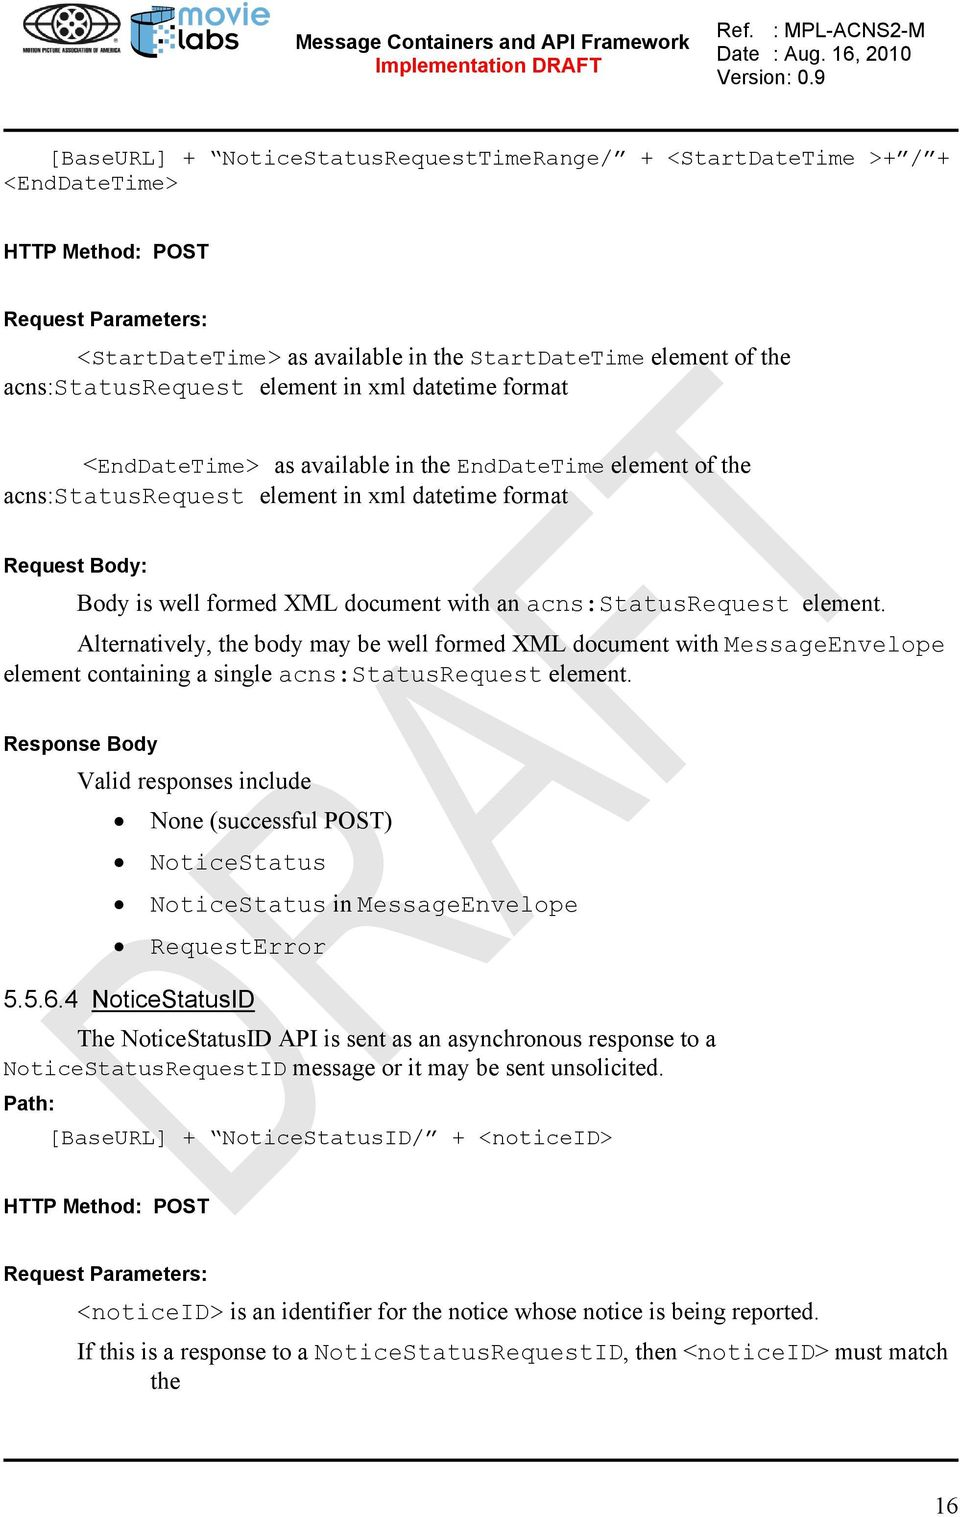 document with an acns:statusrequest element. Alternatively, the body may be well formed XML document with MessageEnvelope element containing a single acns:statusrequest element.